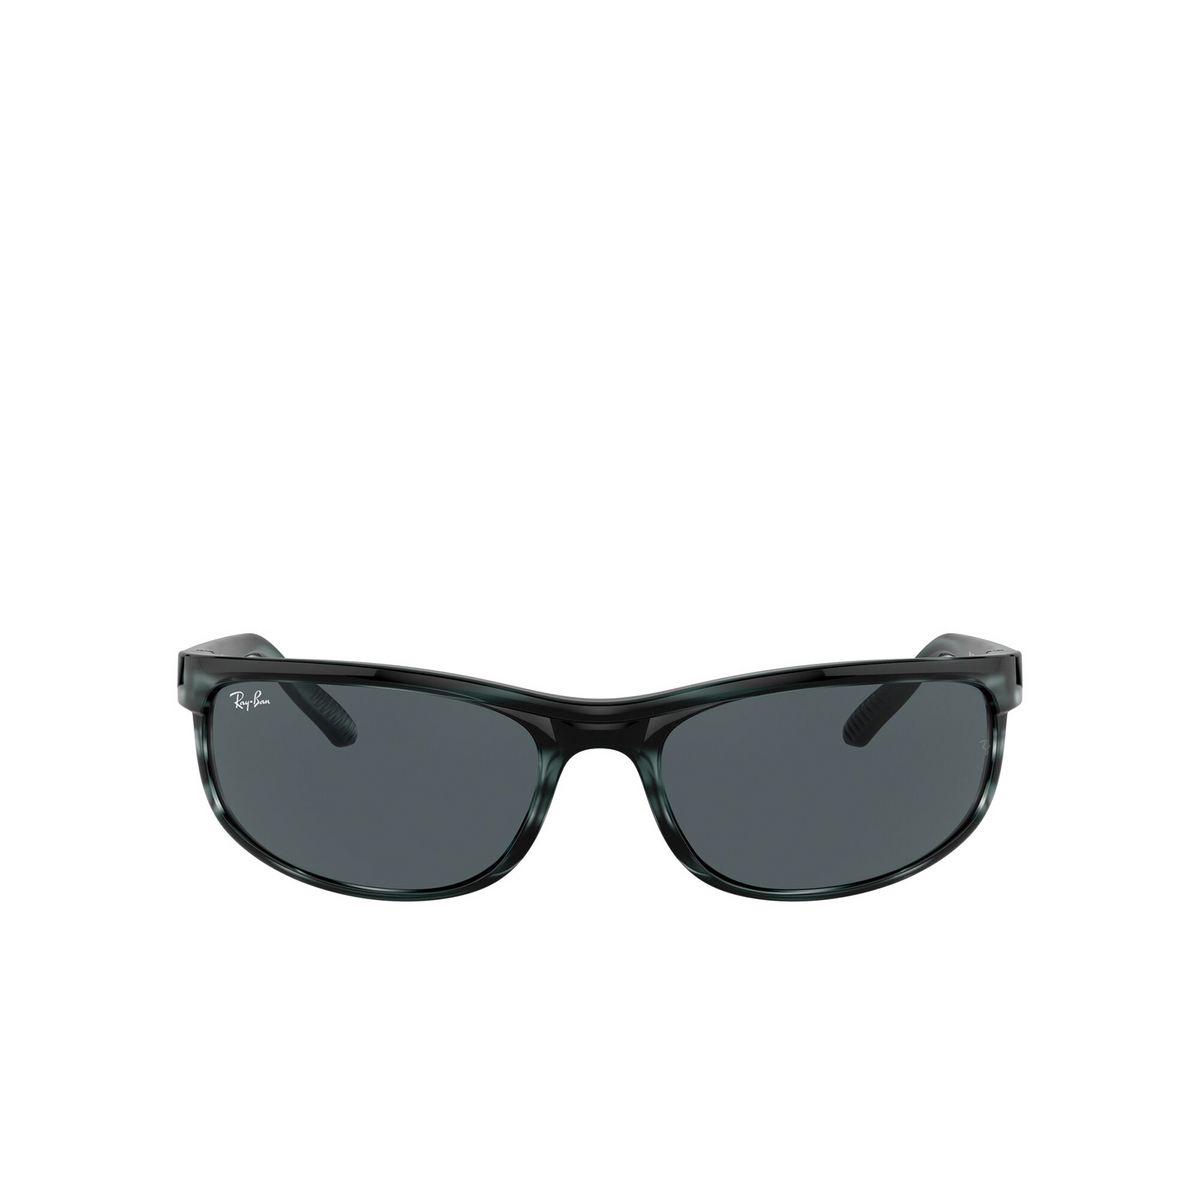 Ray-Ban® Rectangle Sunglasses: Predator 2 RB2027 color Striped Blue Havana 6432R5 - front view.